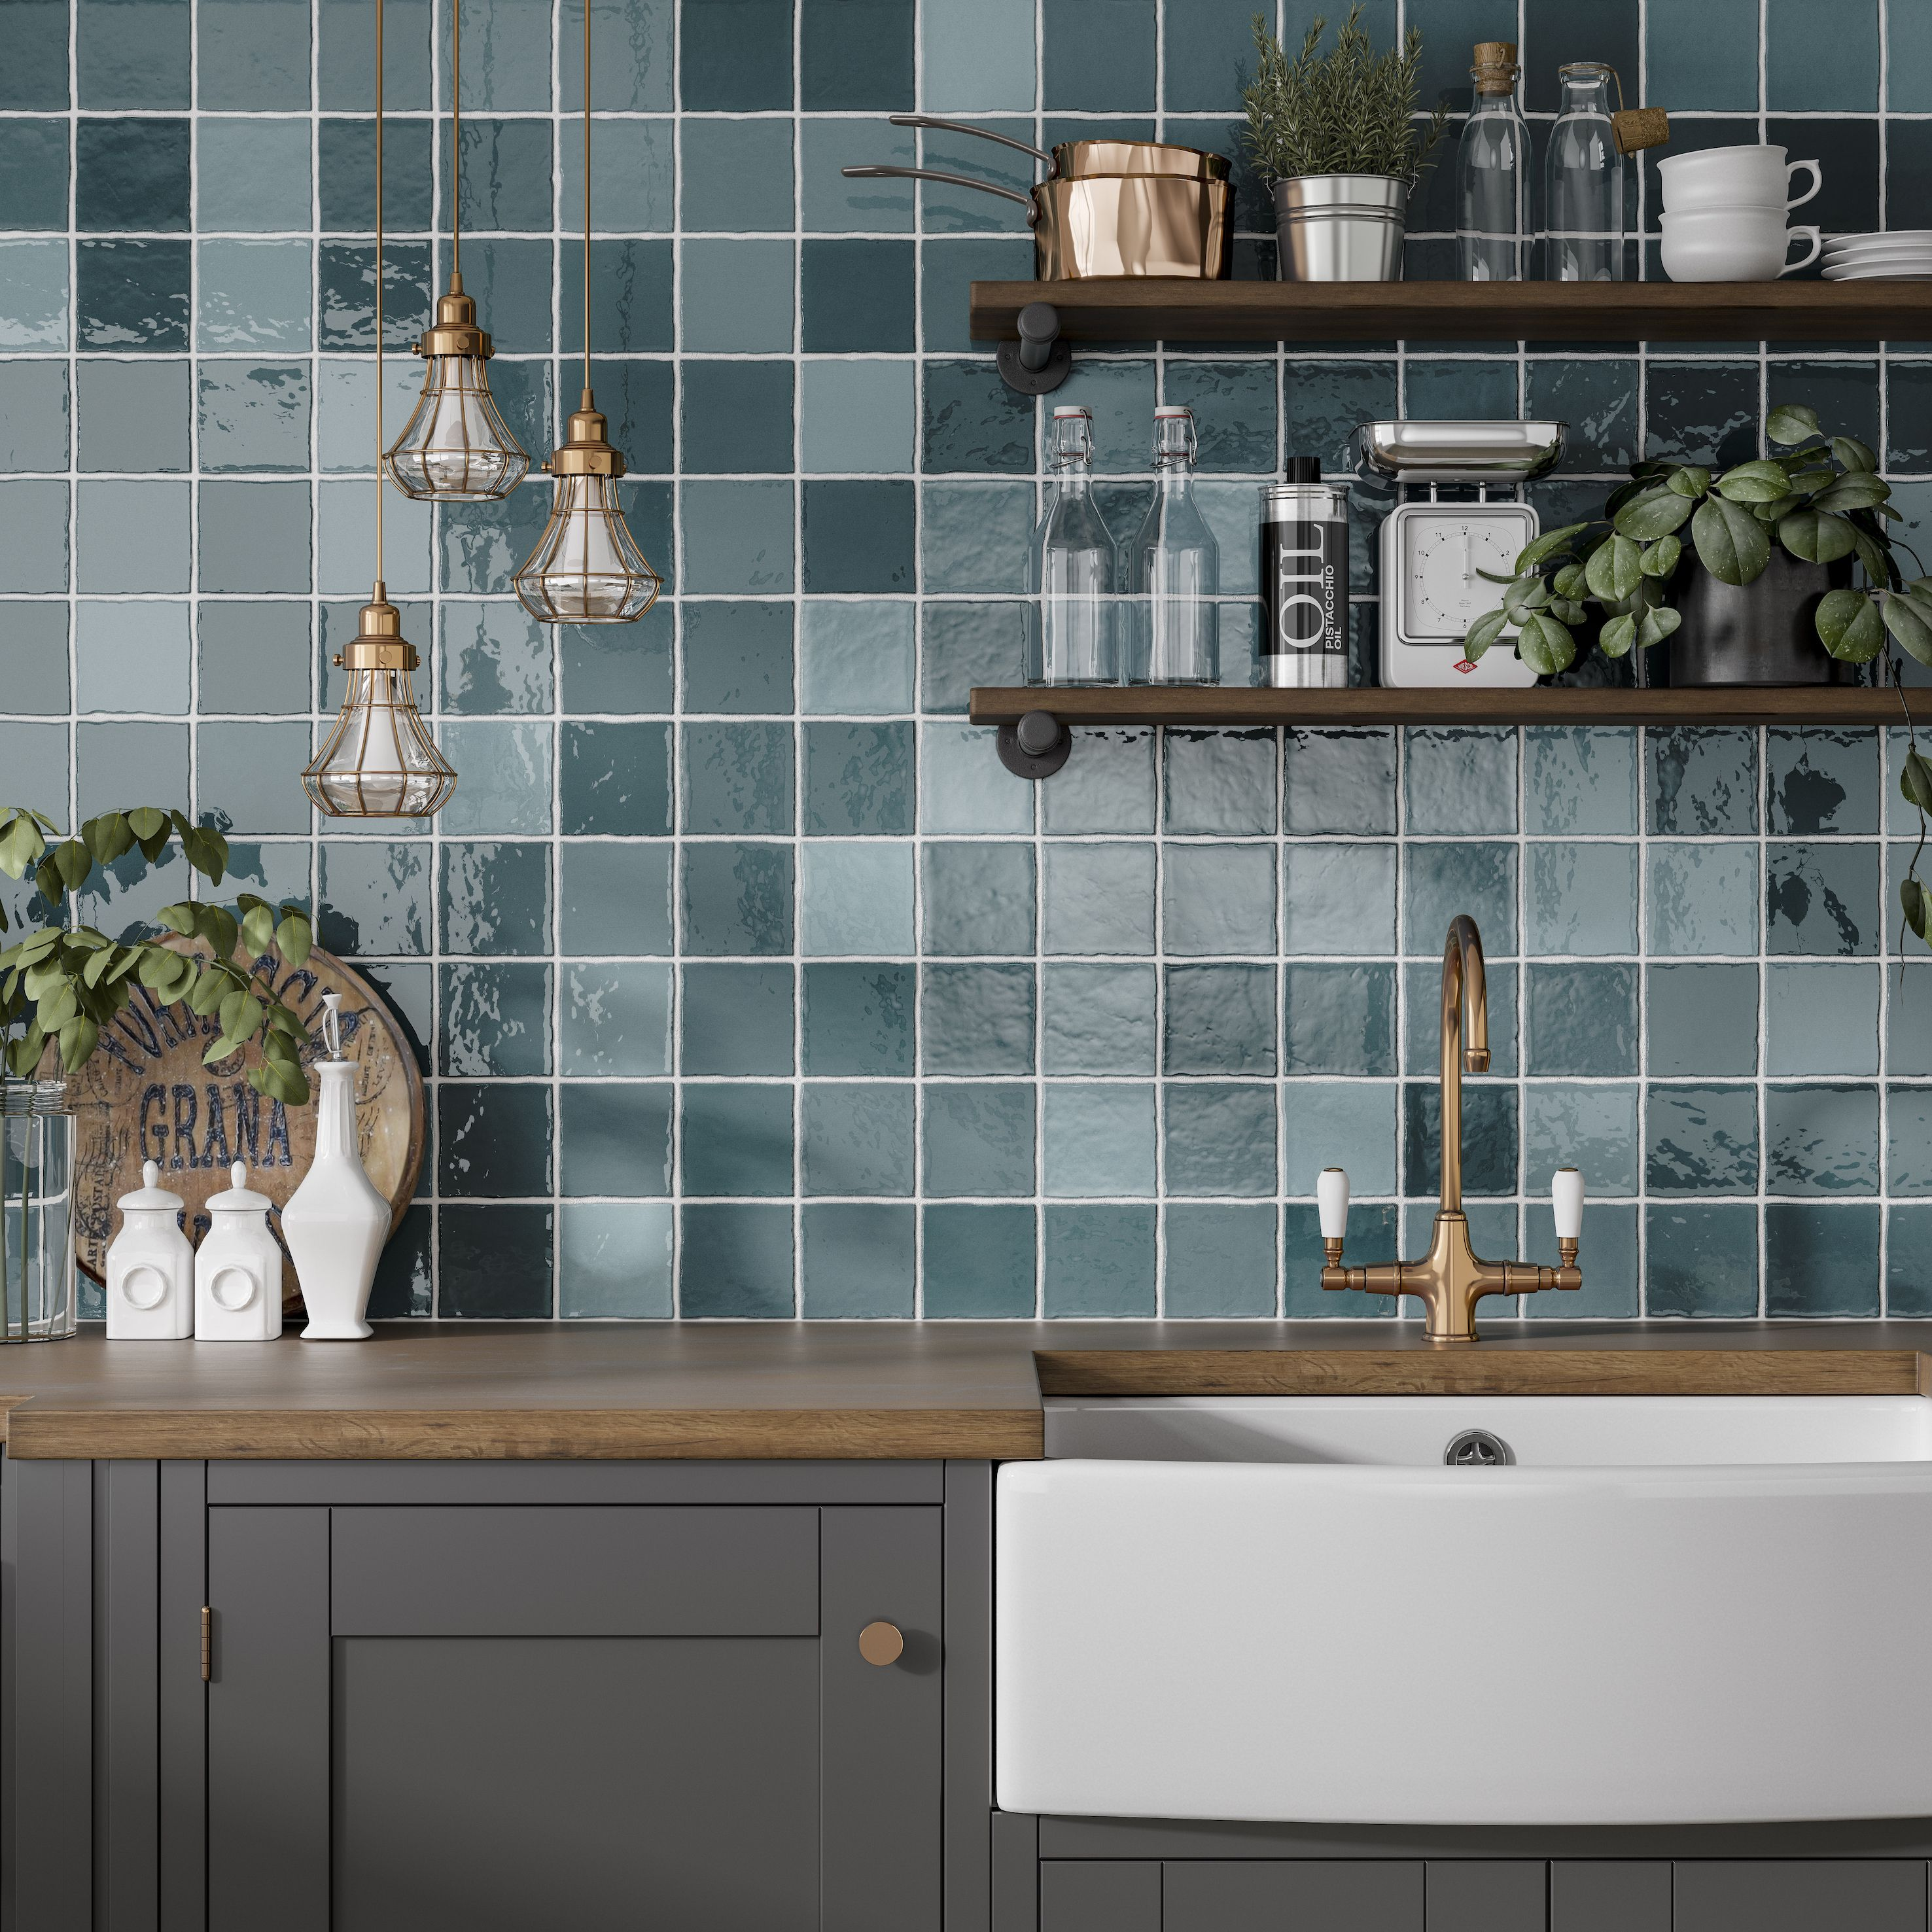 How To Choose The Best Kitchen Tiles Wall Tiles Kitchen Wall Tiles Turquoise Tile Tiles in the kitchen